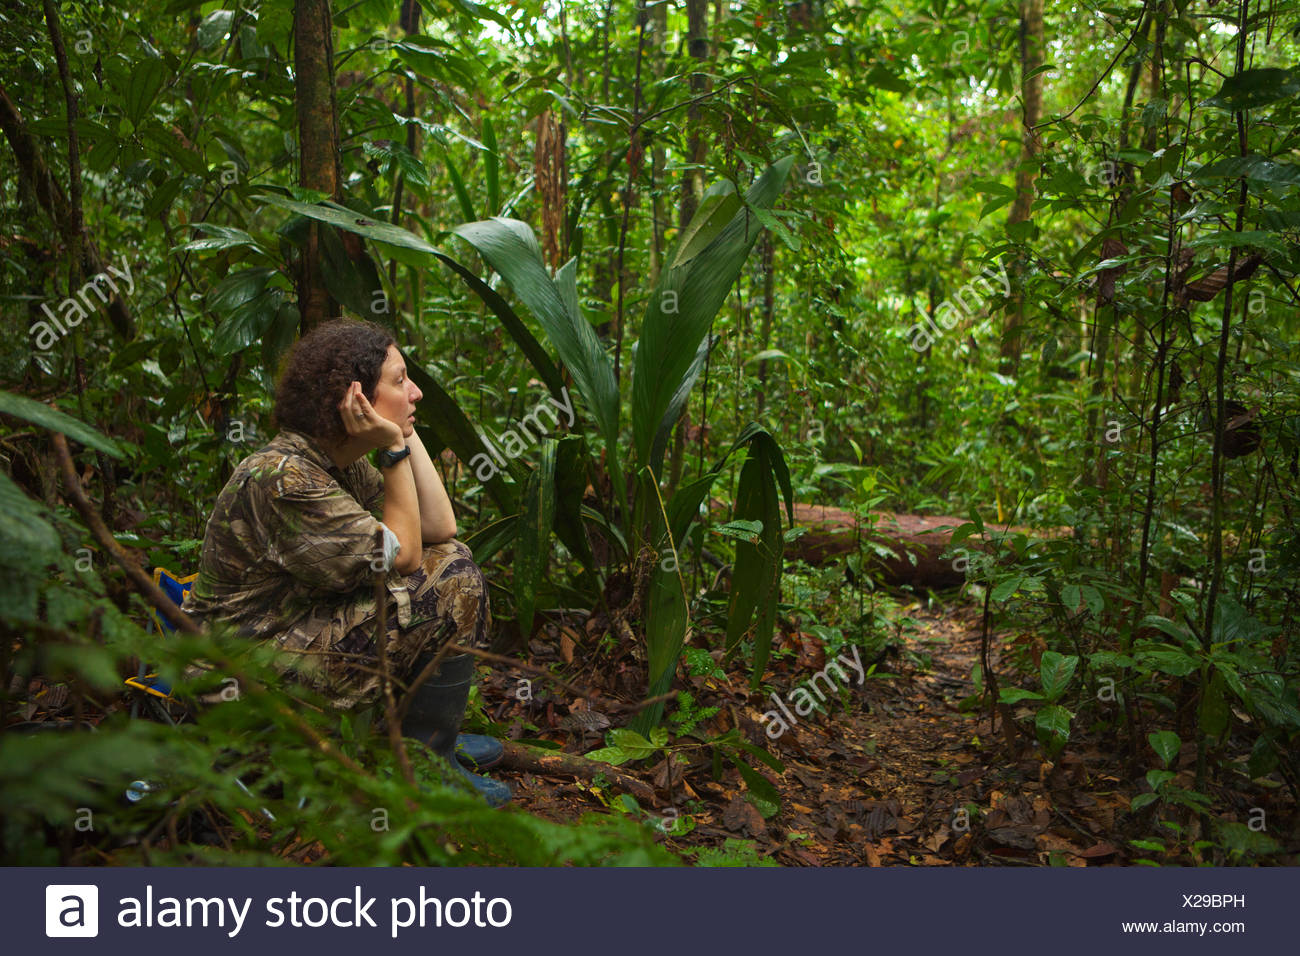 An ornithologist listens, watches, and waits for a striped manakin. - Stock Image